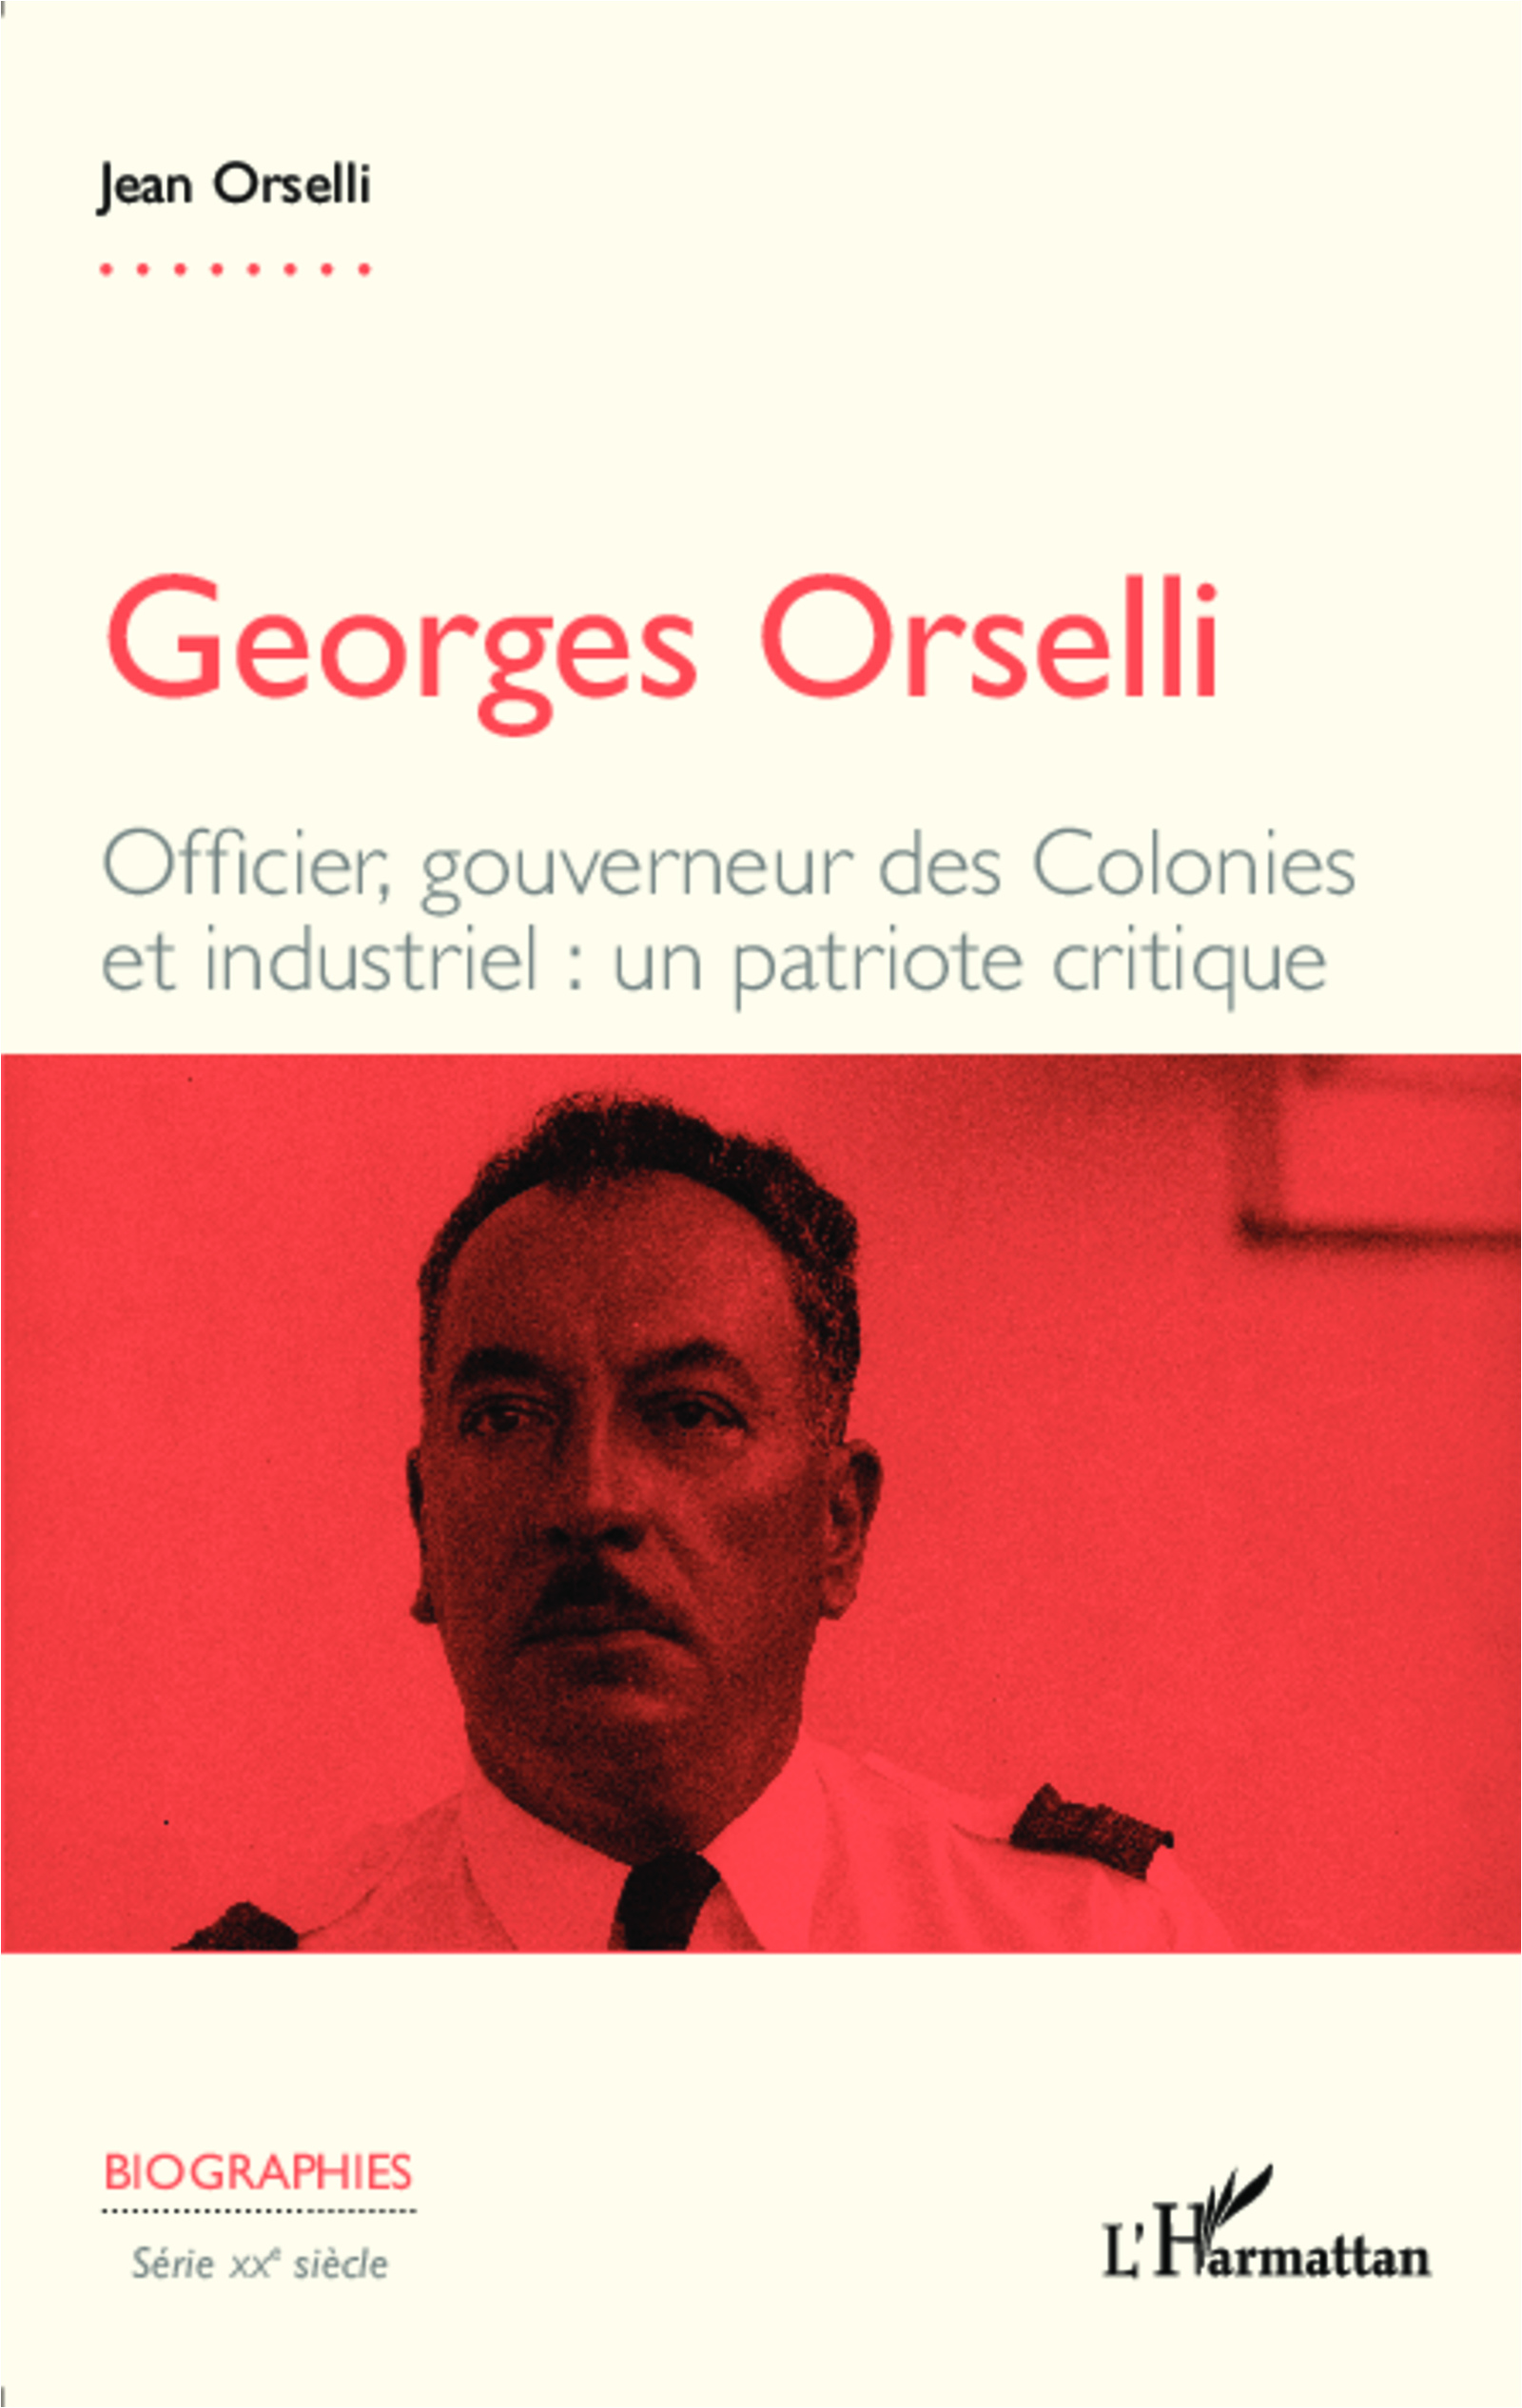 Georges Orselli